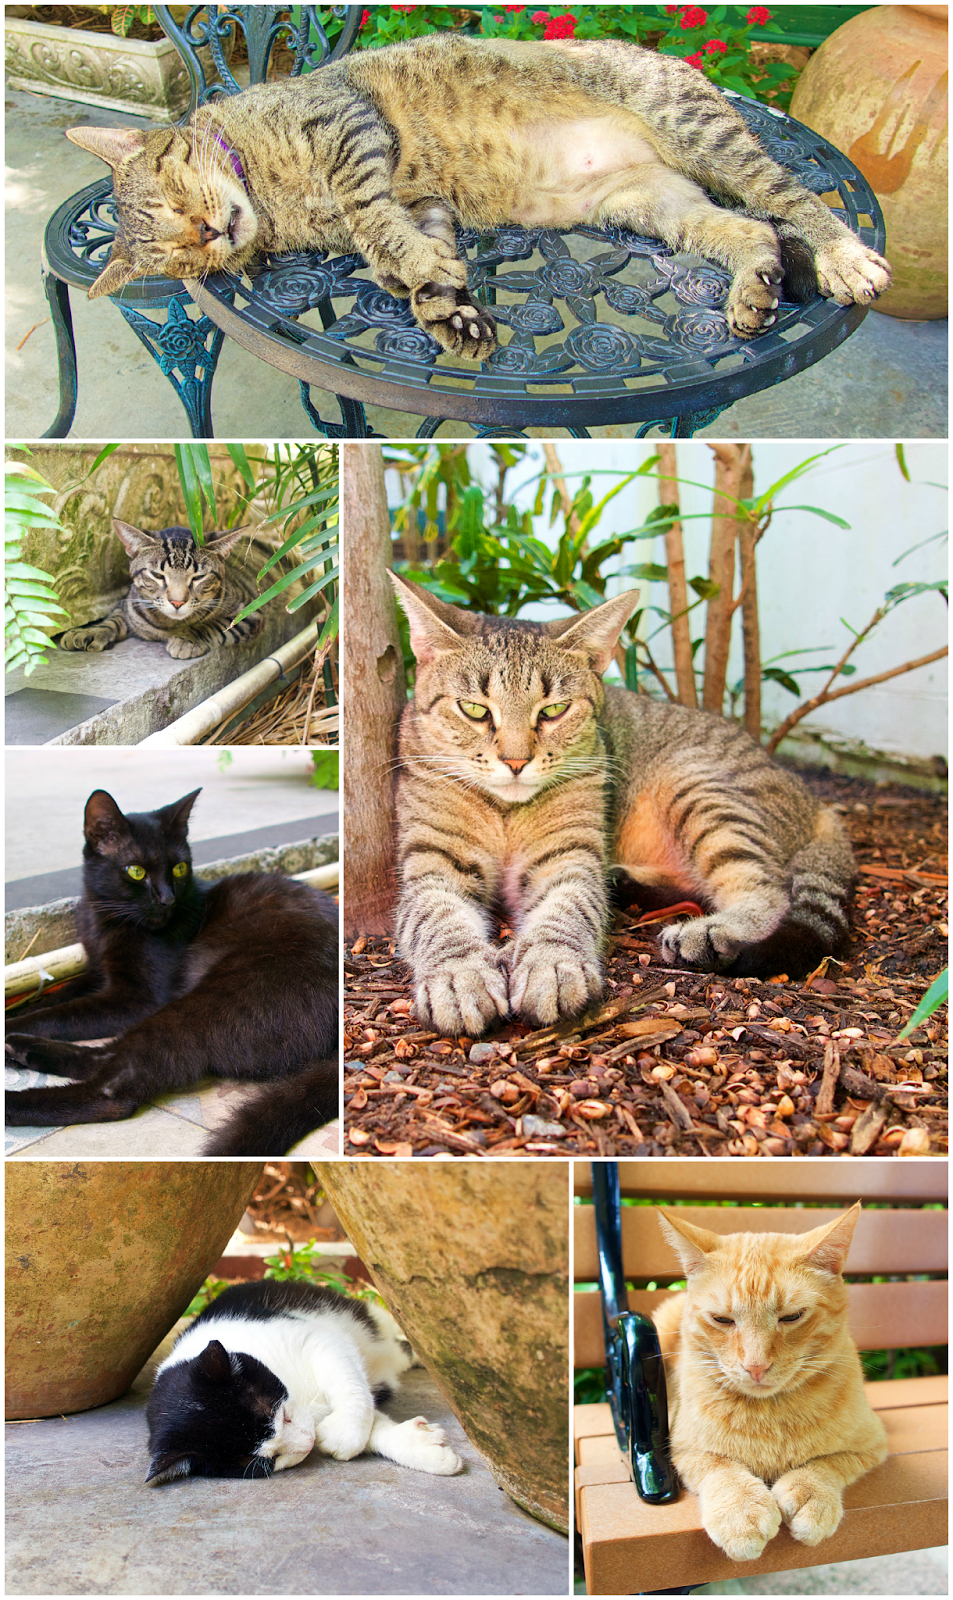 Hemingway Cats with 6 toes - Key West, FL